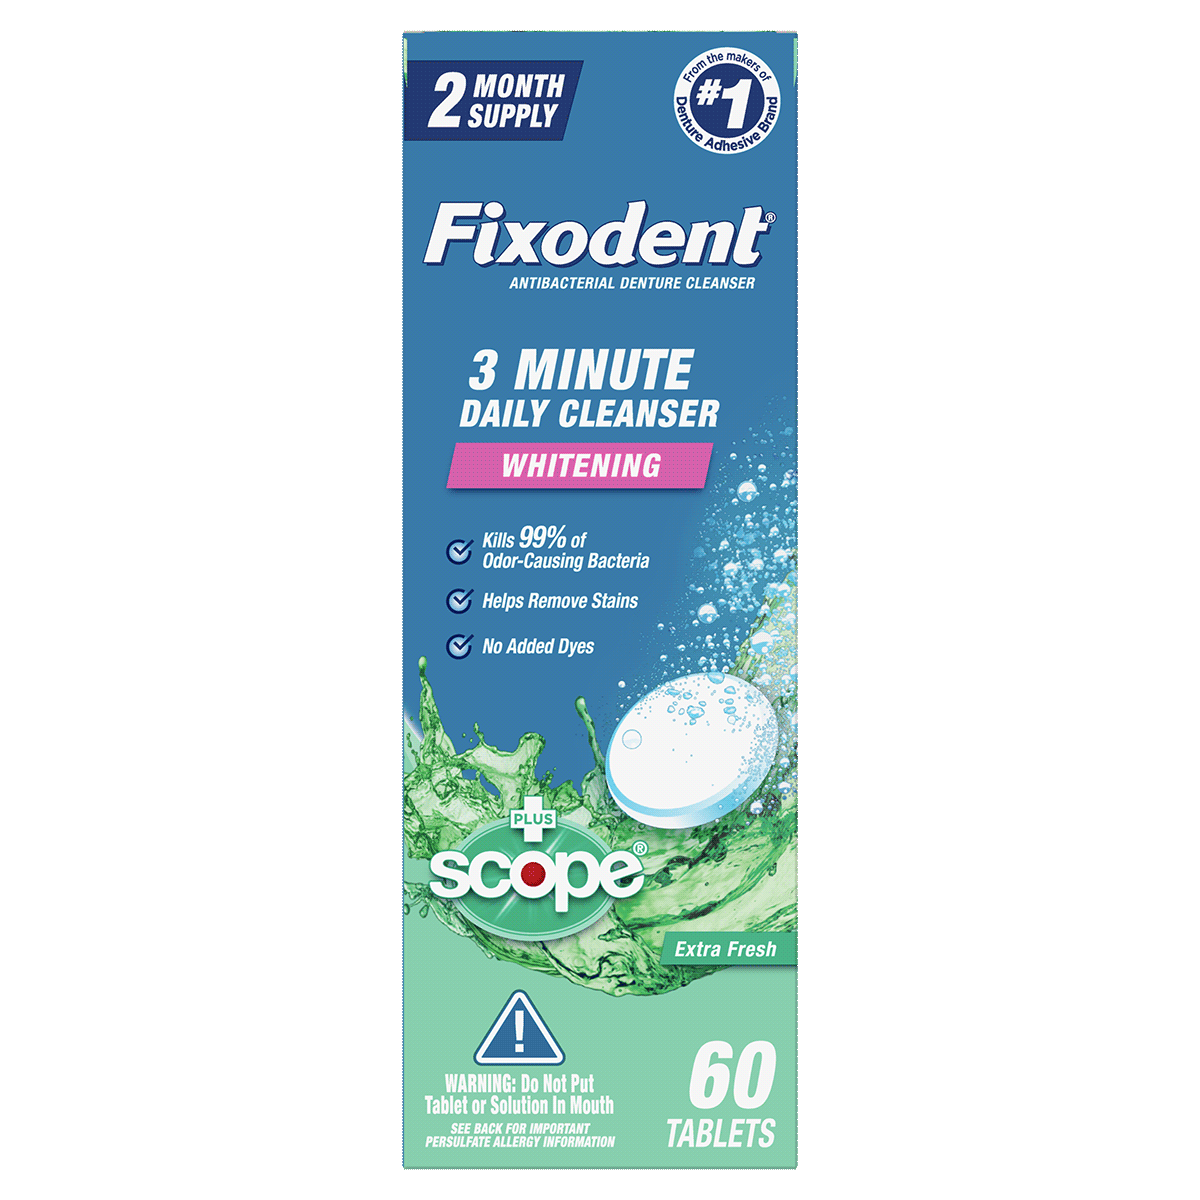 Fixodent 3 Minute Cleanser - Variant 1 Img